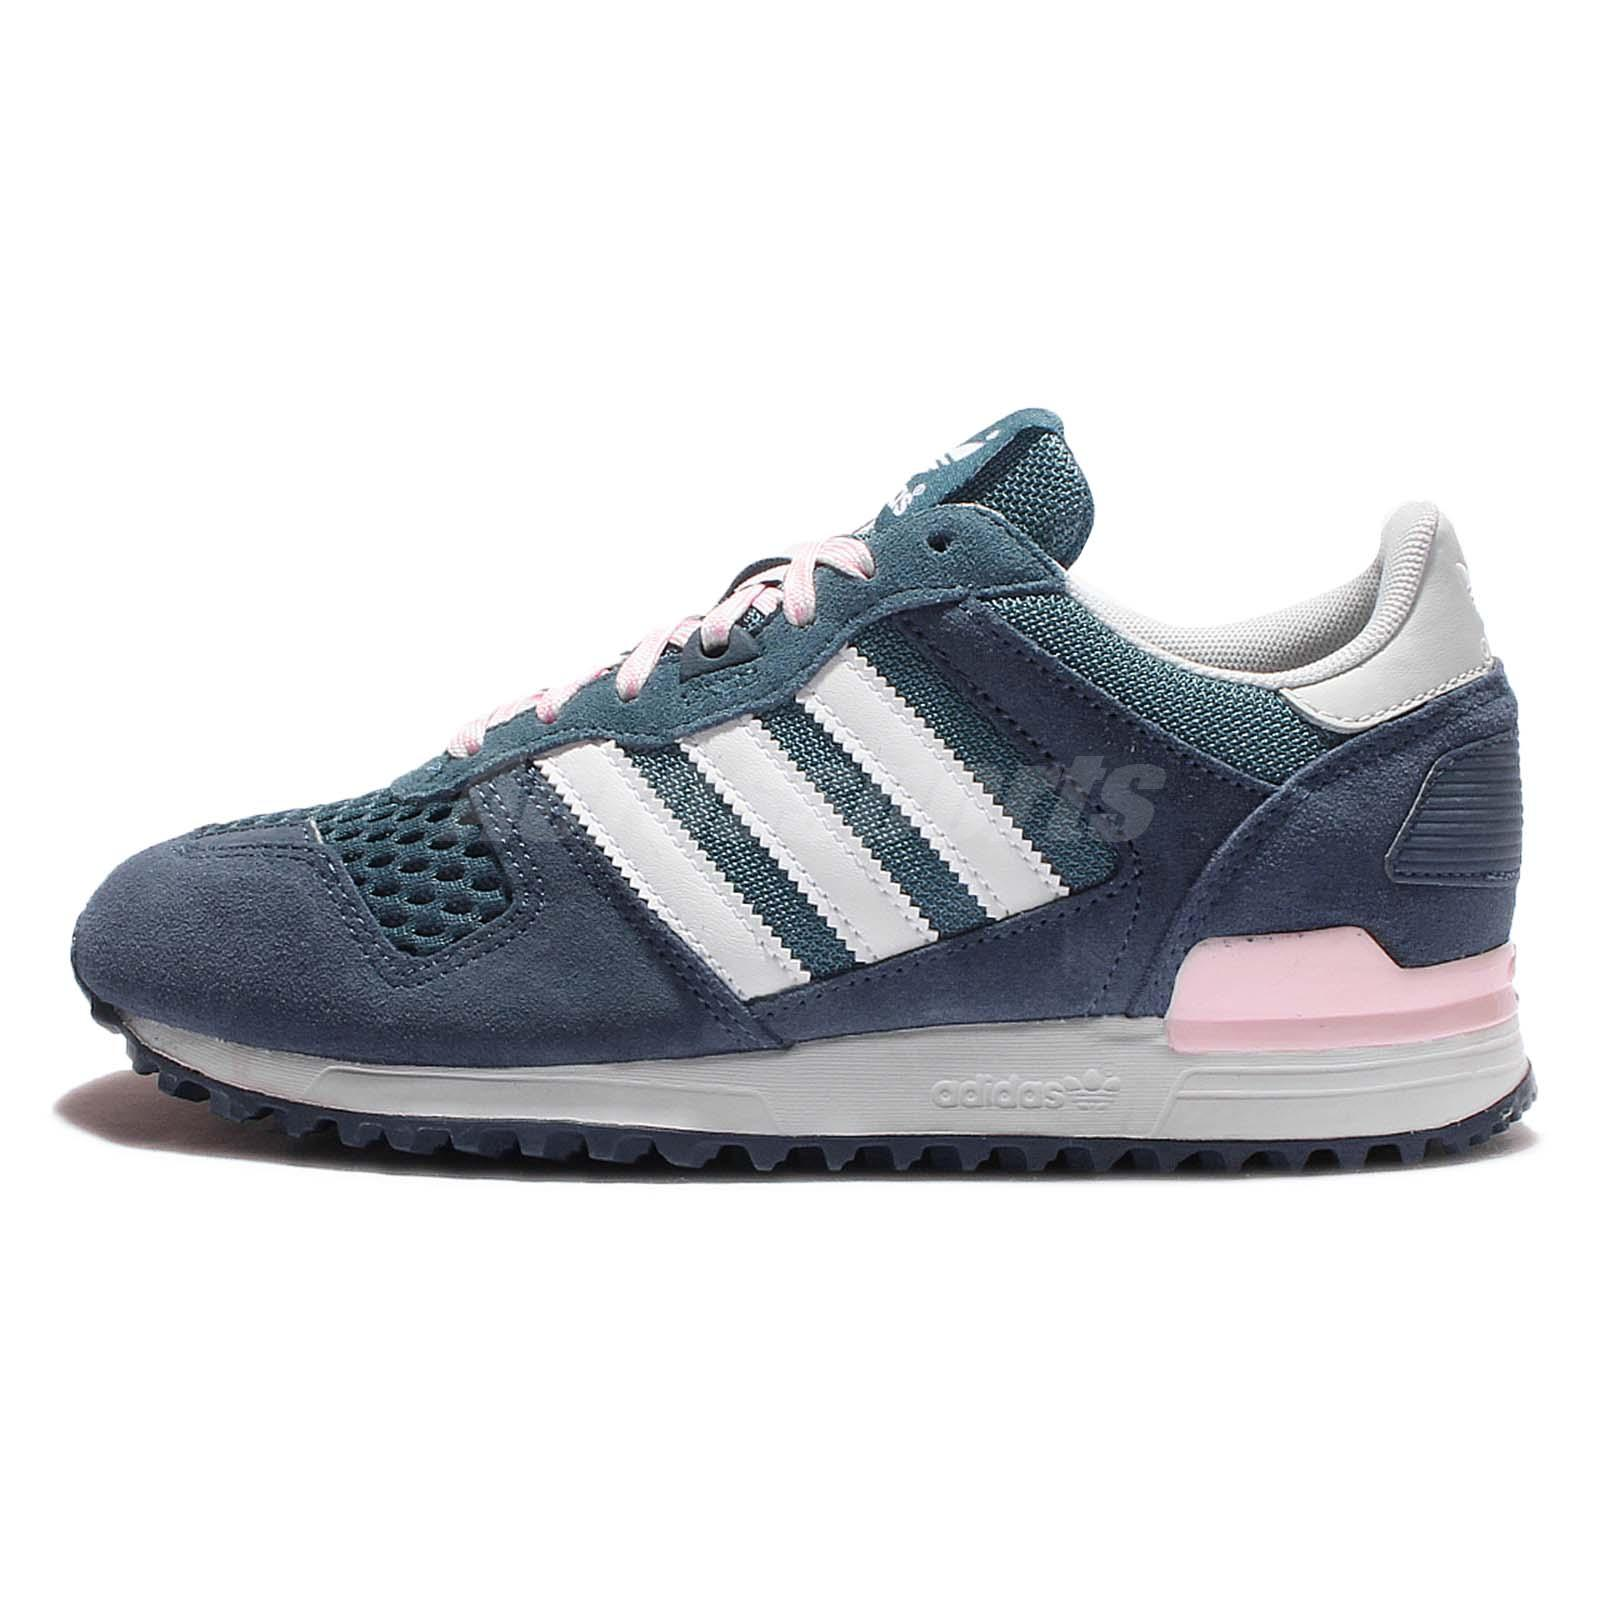 adidas Originals ZX 700 W Blue White Pink Suede Womens Trainers Sneakers S78940